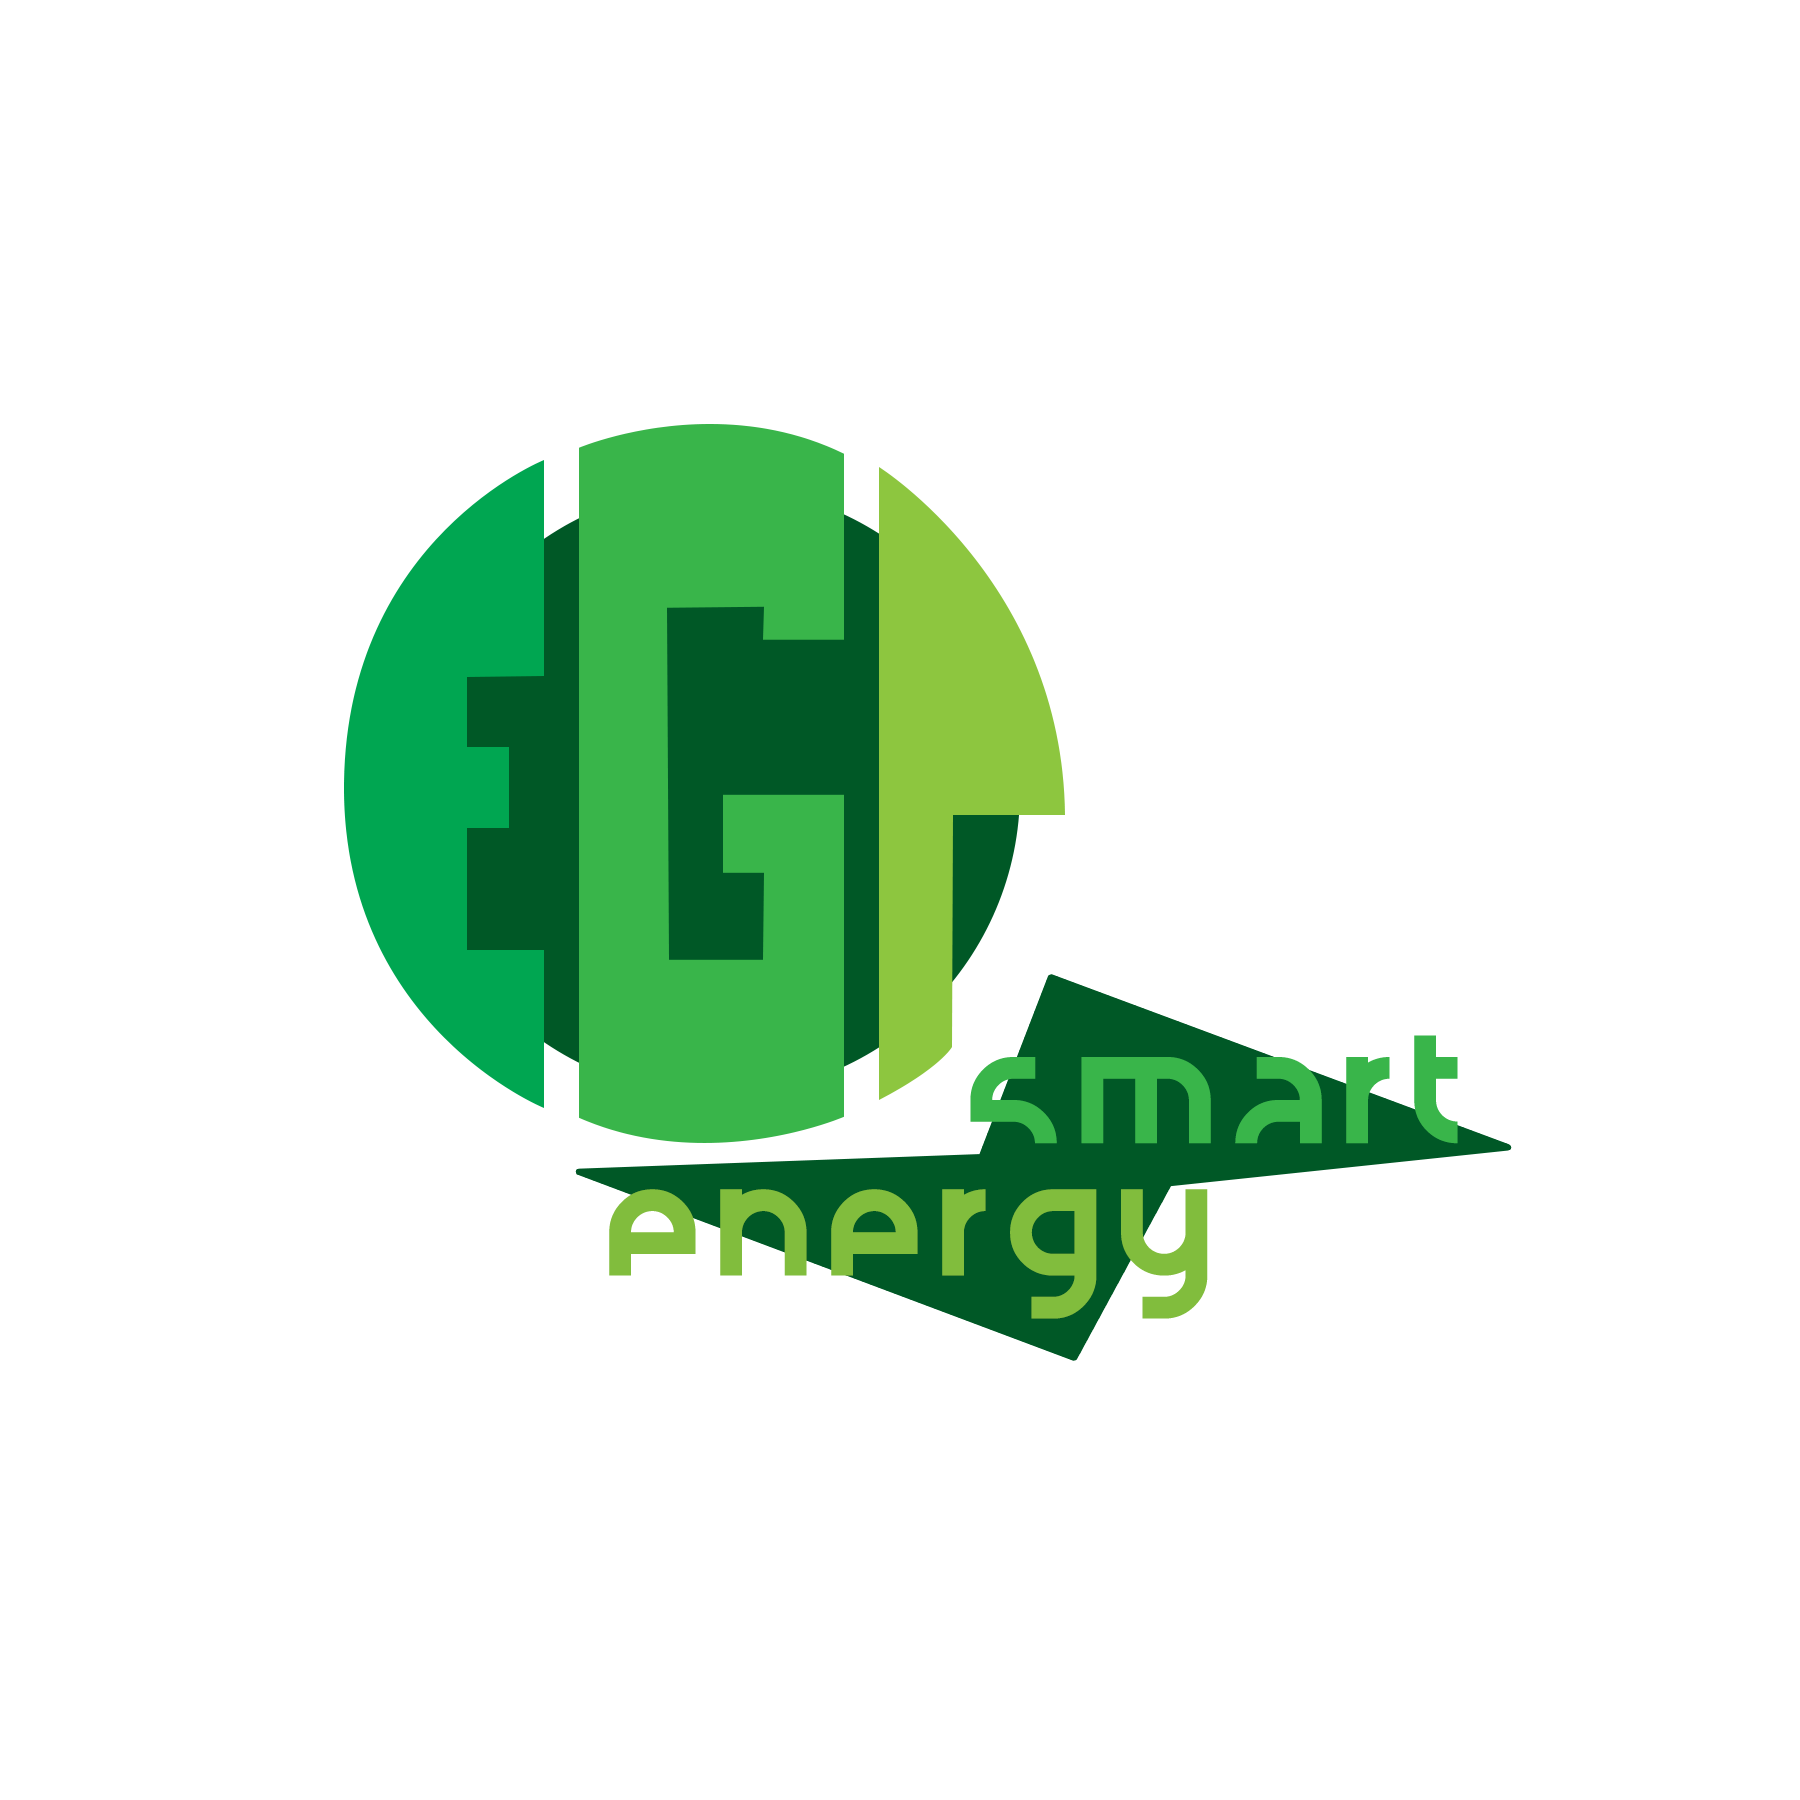 Logo Design by Lemuel Arvin Tanzo - Entry No. 102 in the Logo Design Contest Captivating Logo Design for EGP Smart Energy.